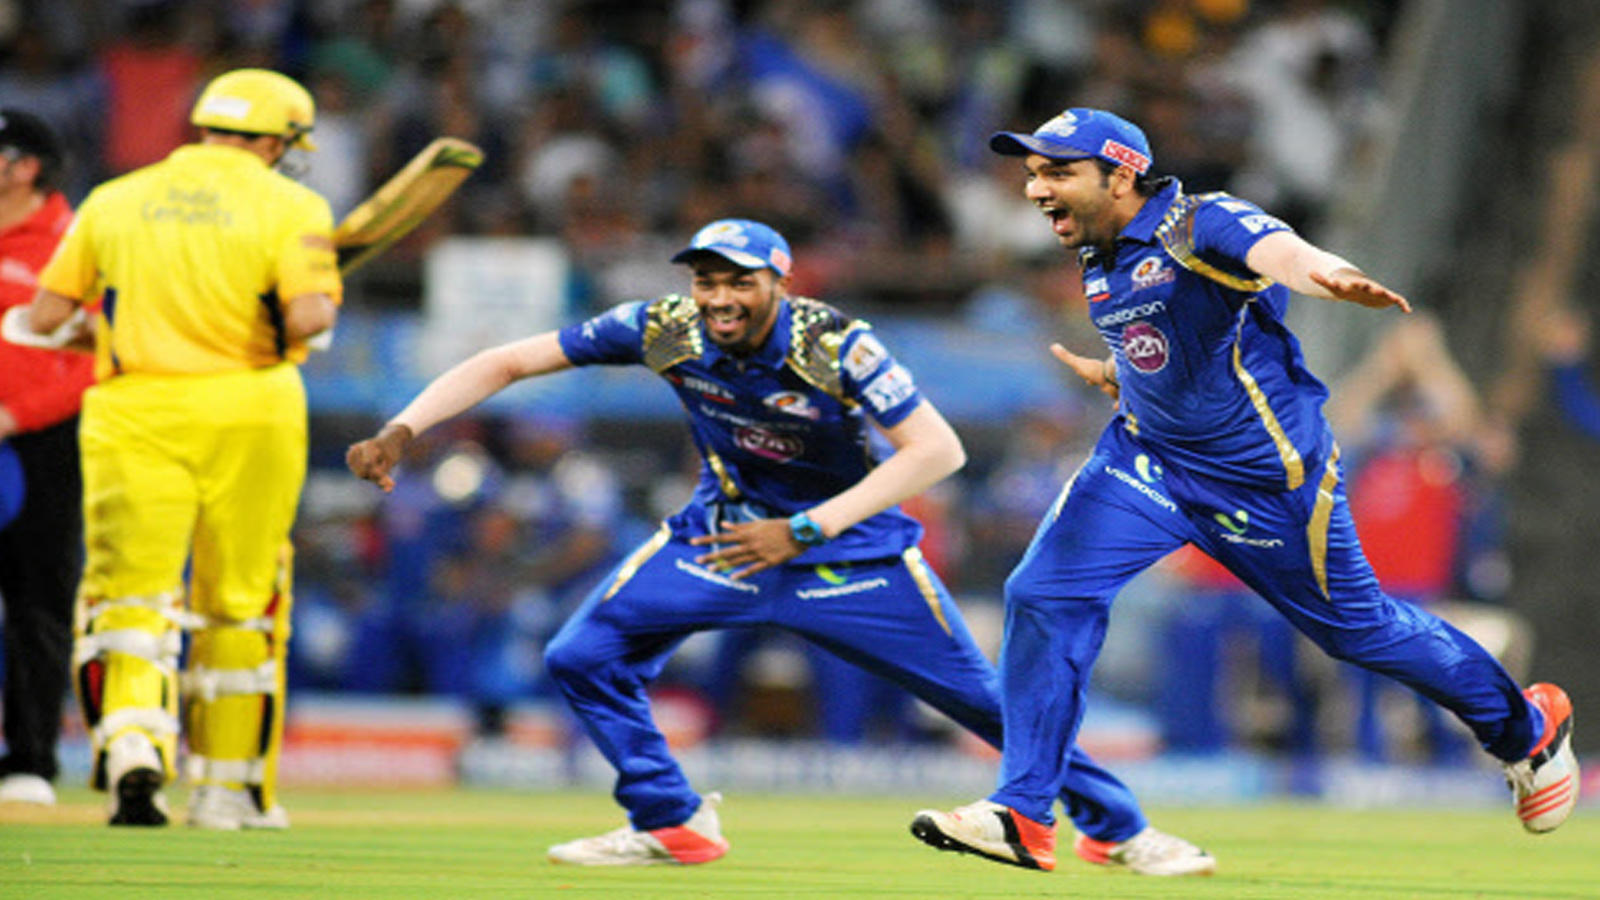 ipl-13-mumbai-indians-vs-csk-in-opening-clash